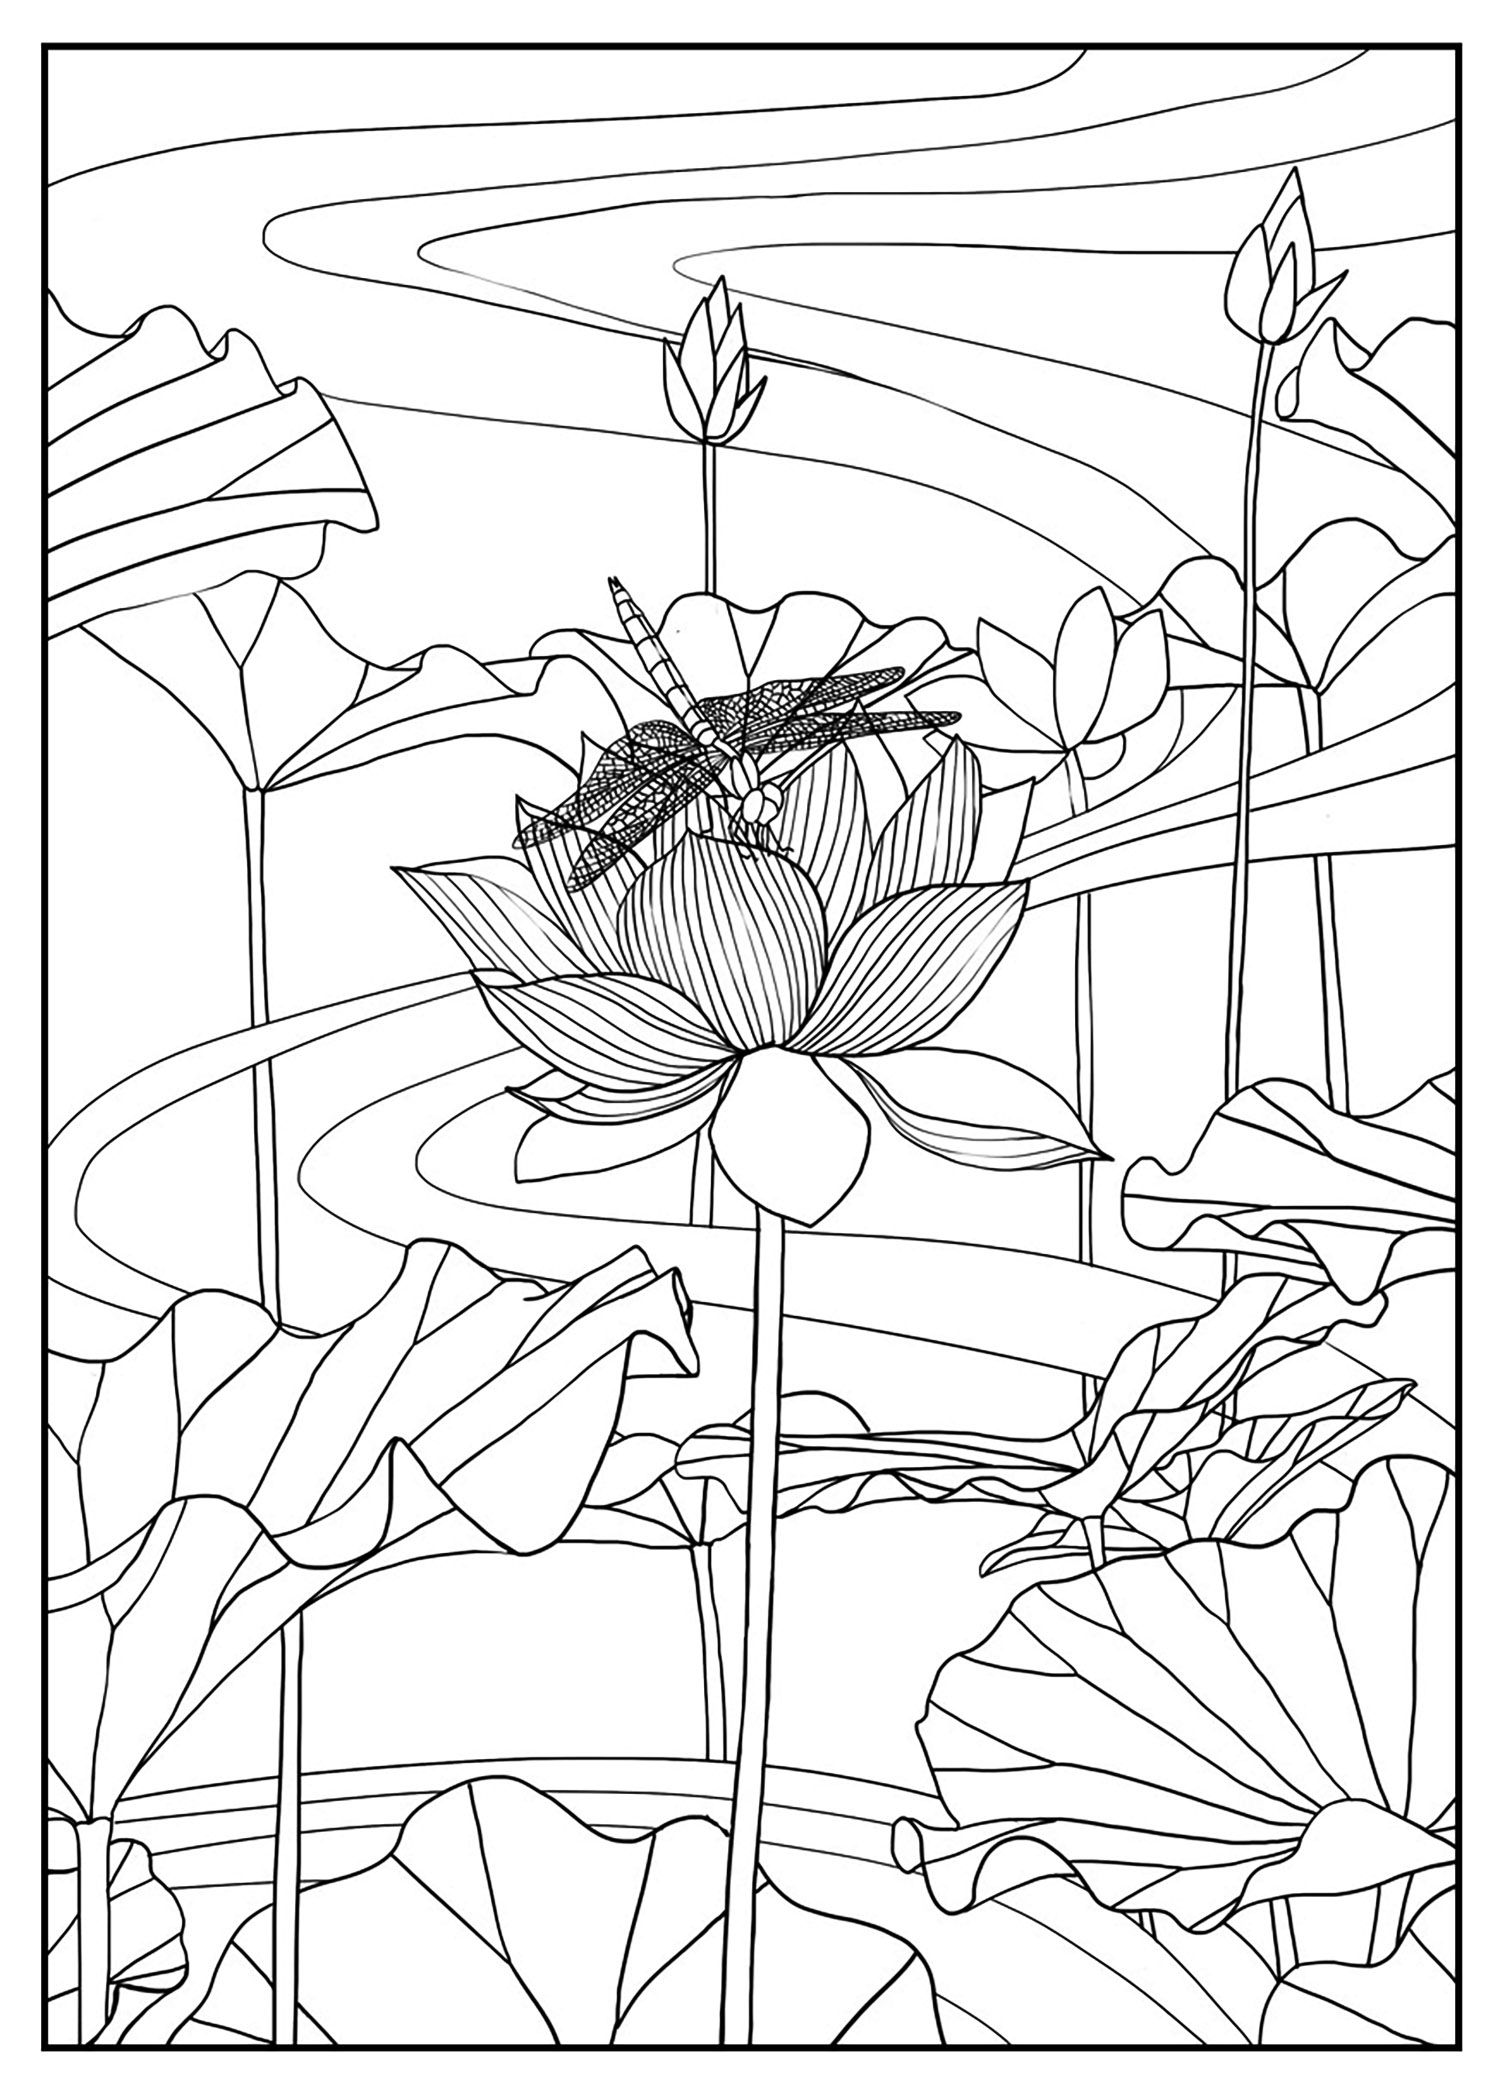 Beautiful Flowers coloring page to print and color